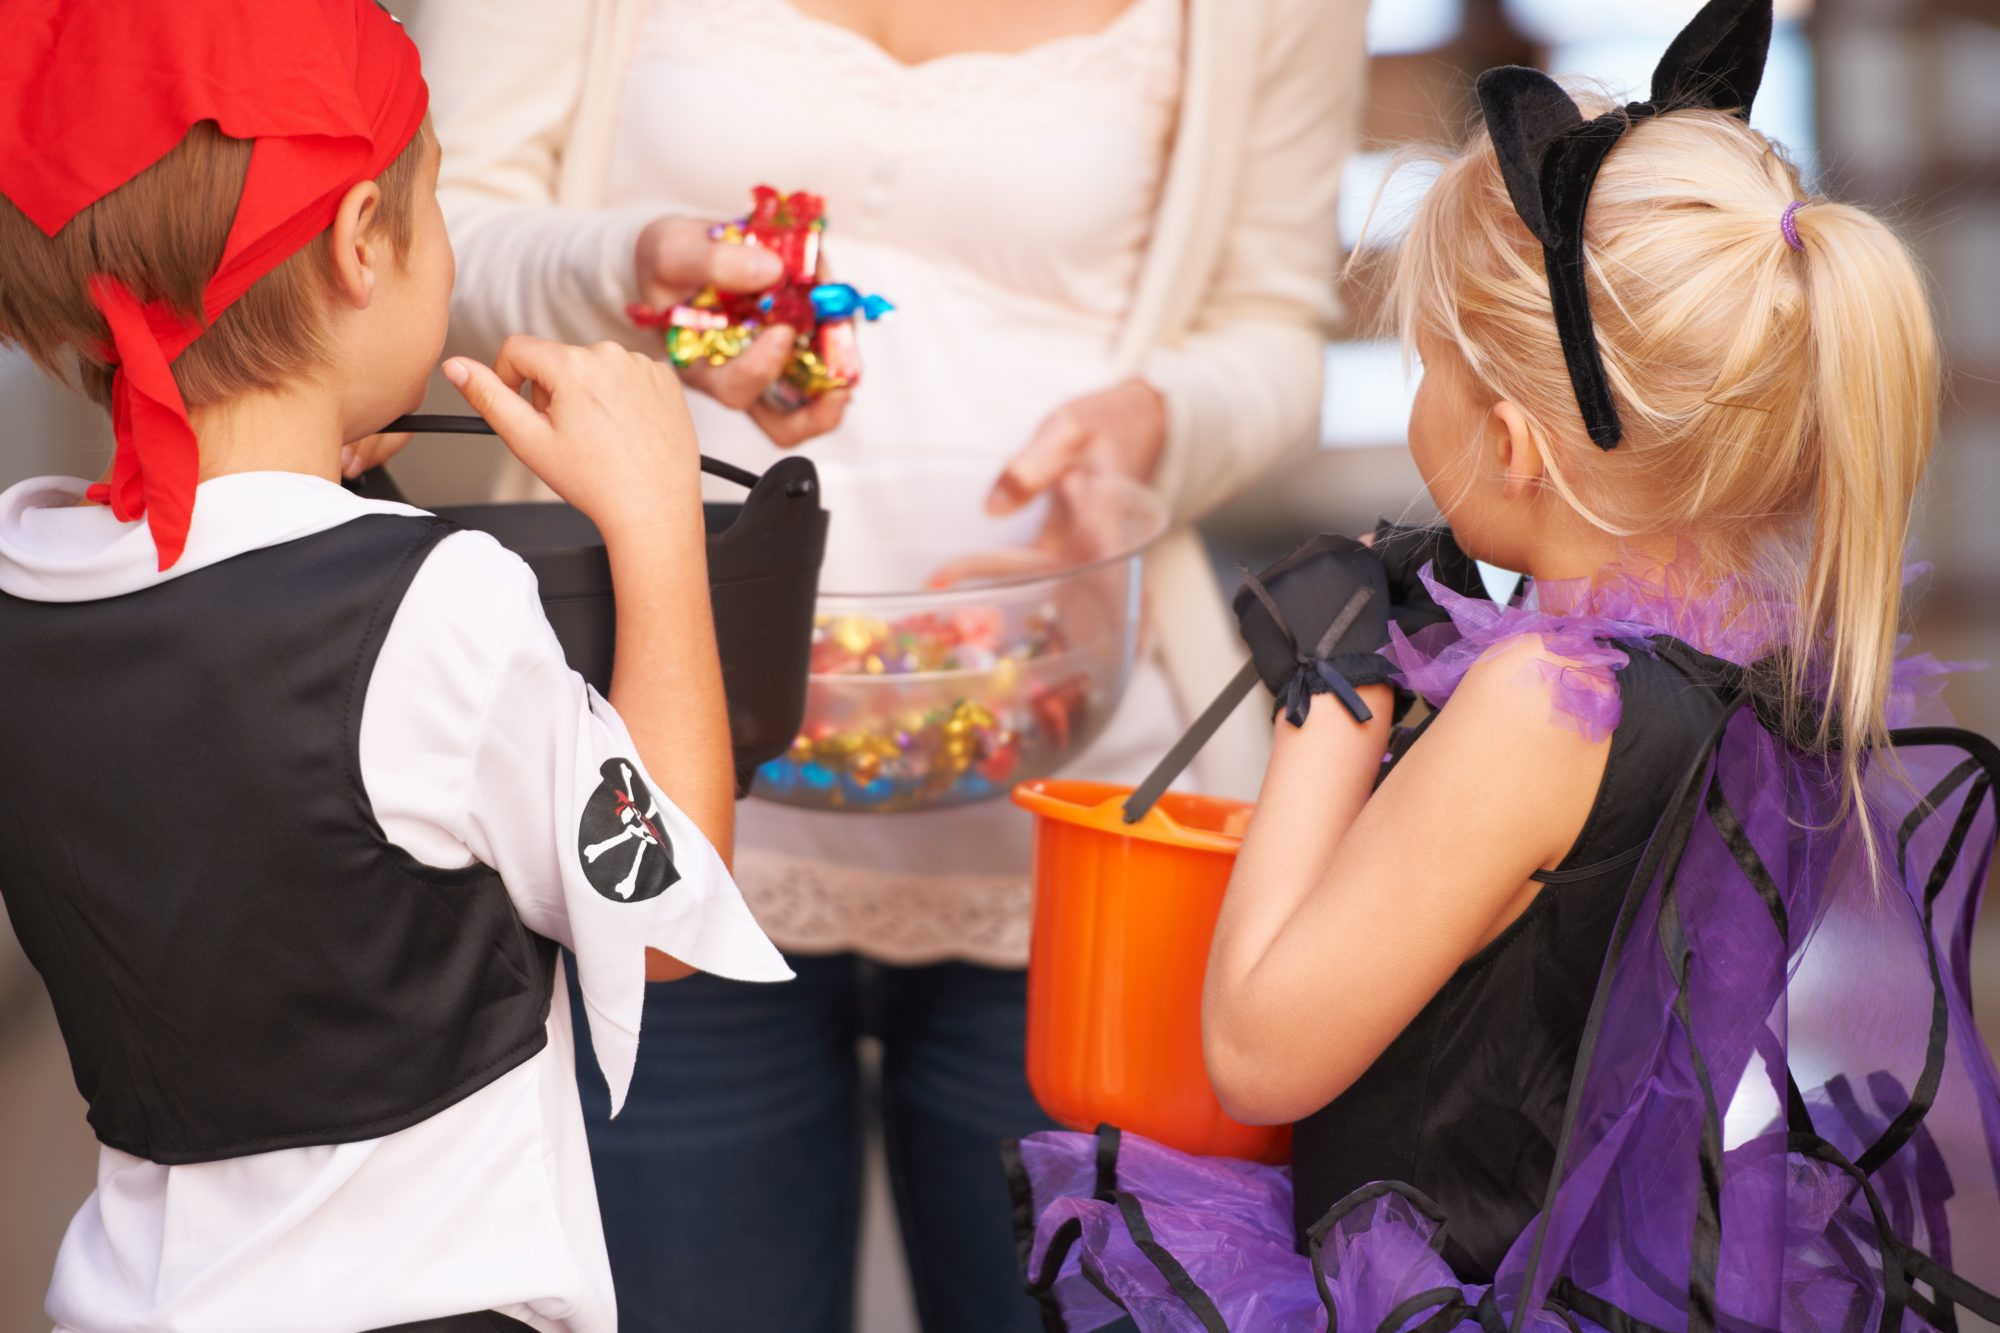 How to Deal With Food Allergies During Halloween